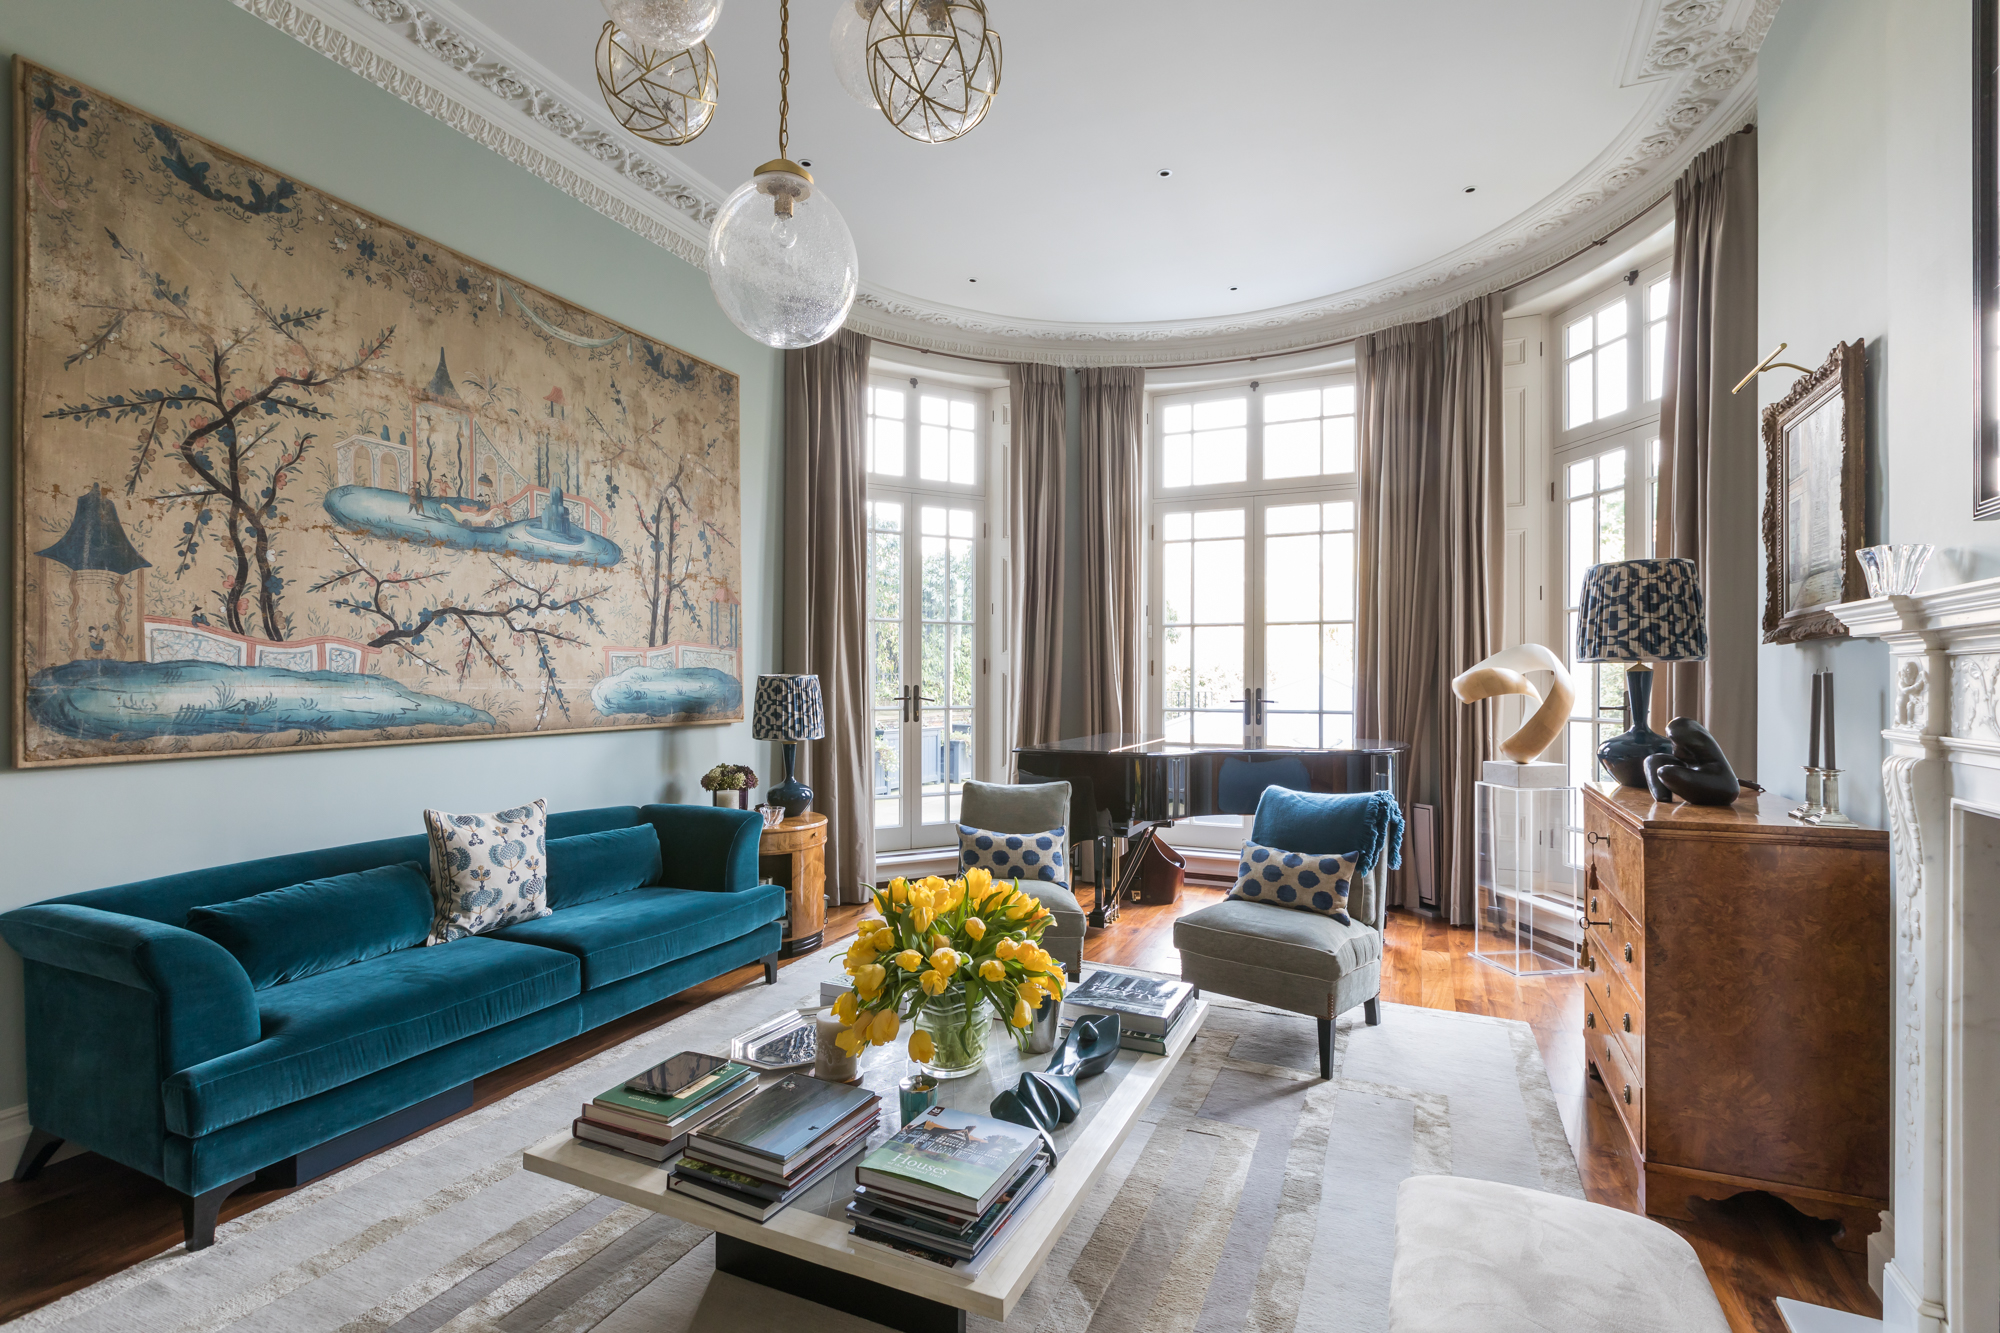 jonathan bond, interior photographer, living room view of wall hanging picture, holland park, london